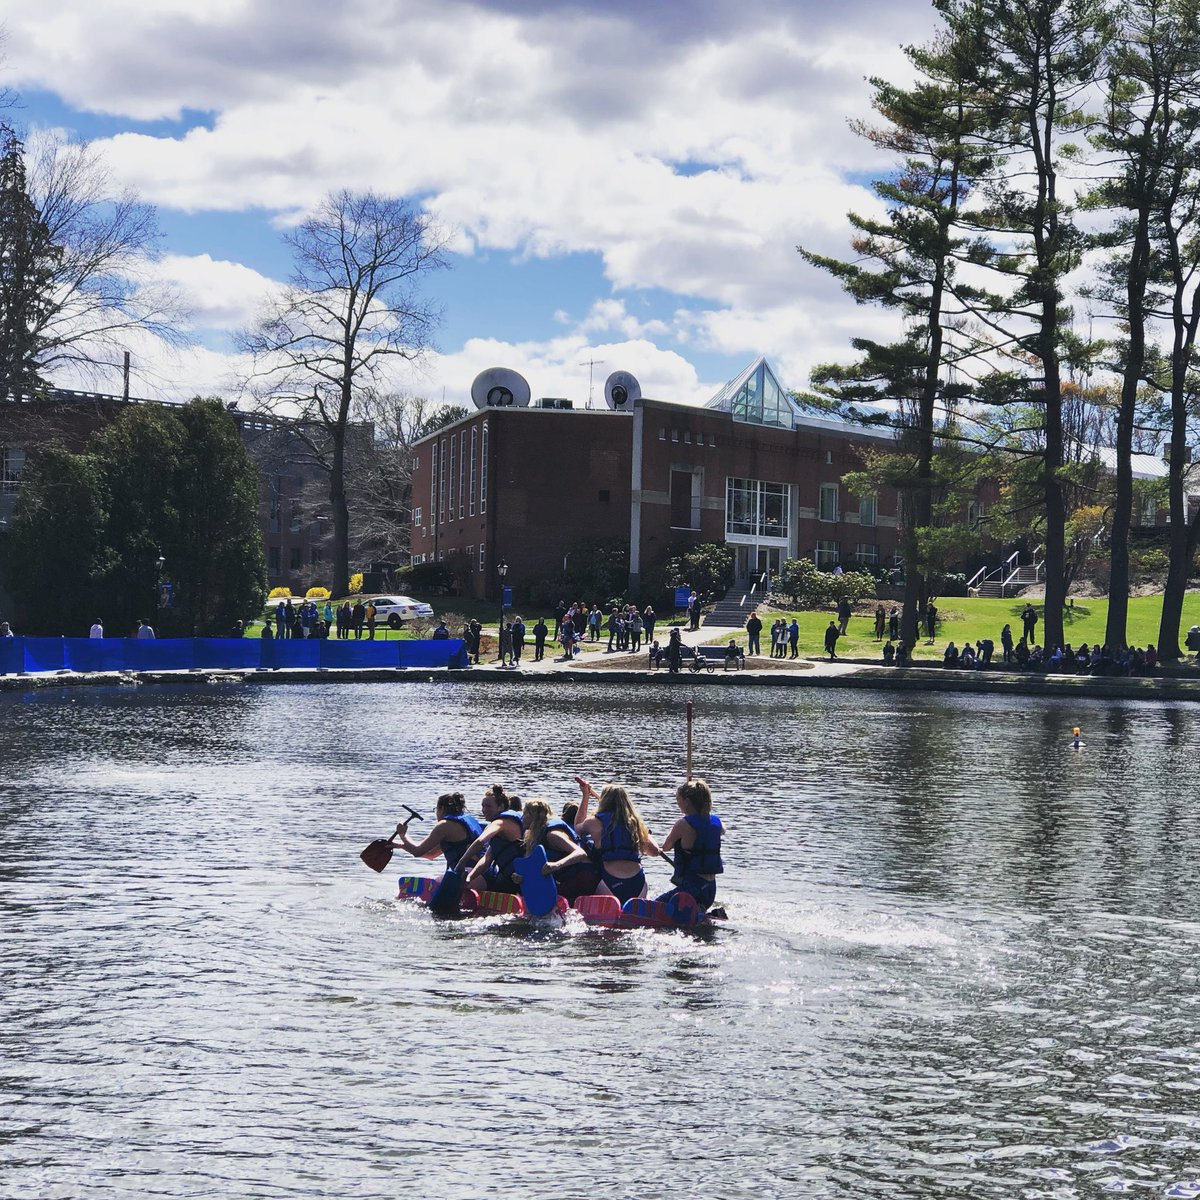 A favorite Wheaton tradition in the hearts of many students and alumni, the Head of the Peacock Regatta happened this afternoon. Check out our Instagram stories for highlights. https://t.co/2cCOLVzJm2 https://t.co/k9W2iiFIPS